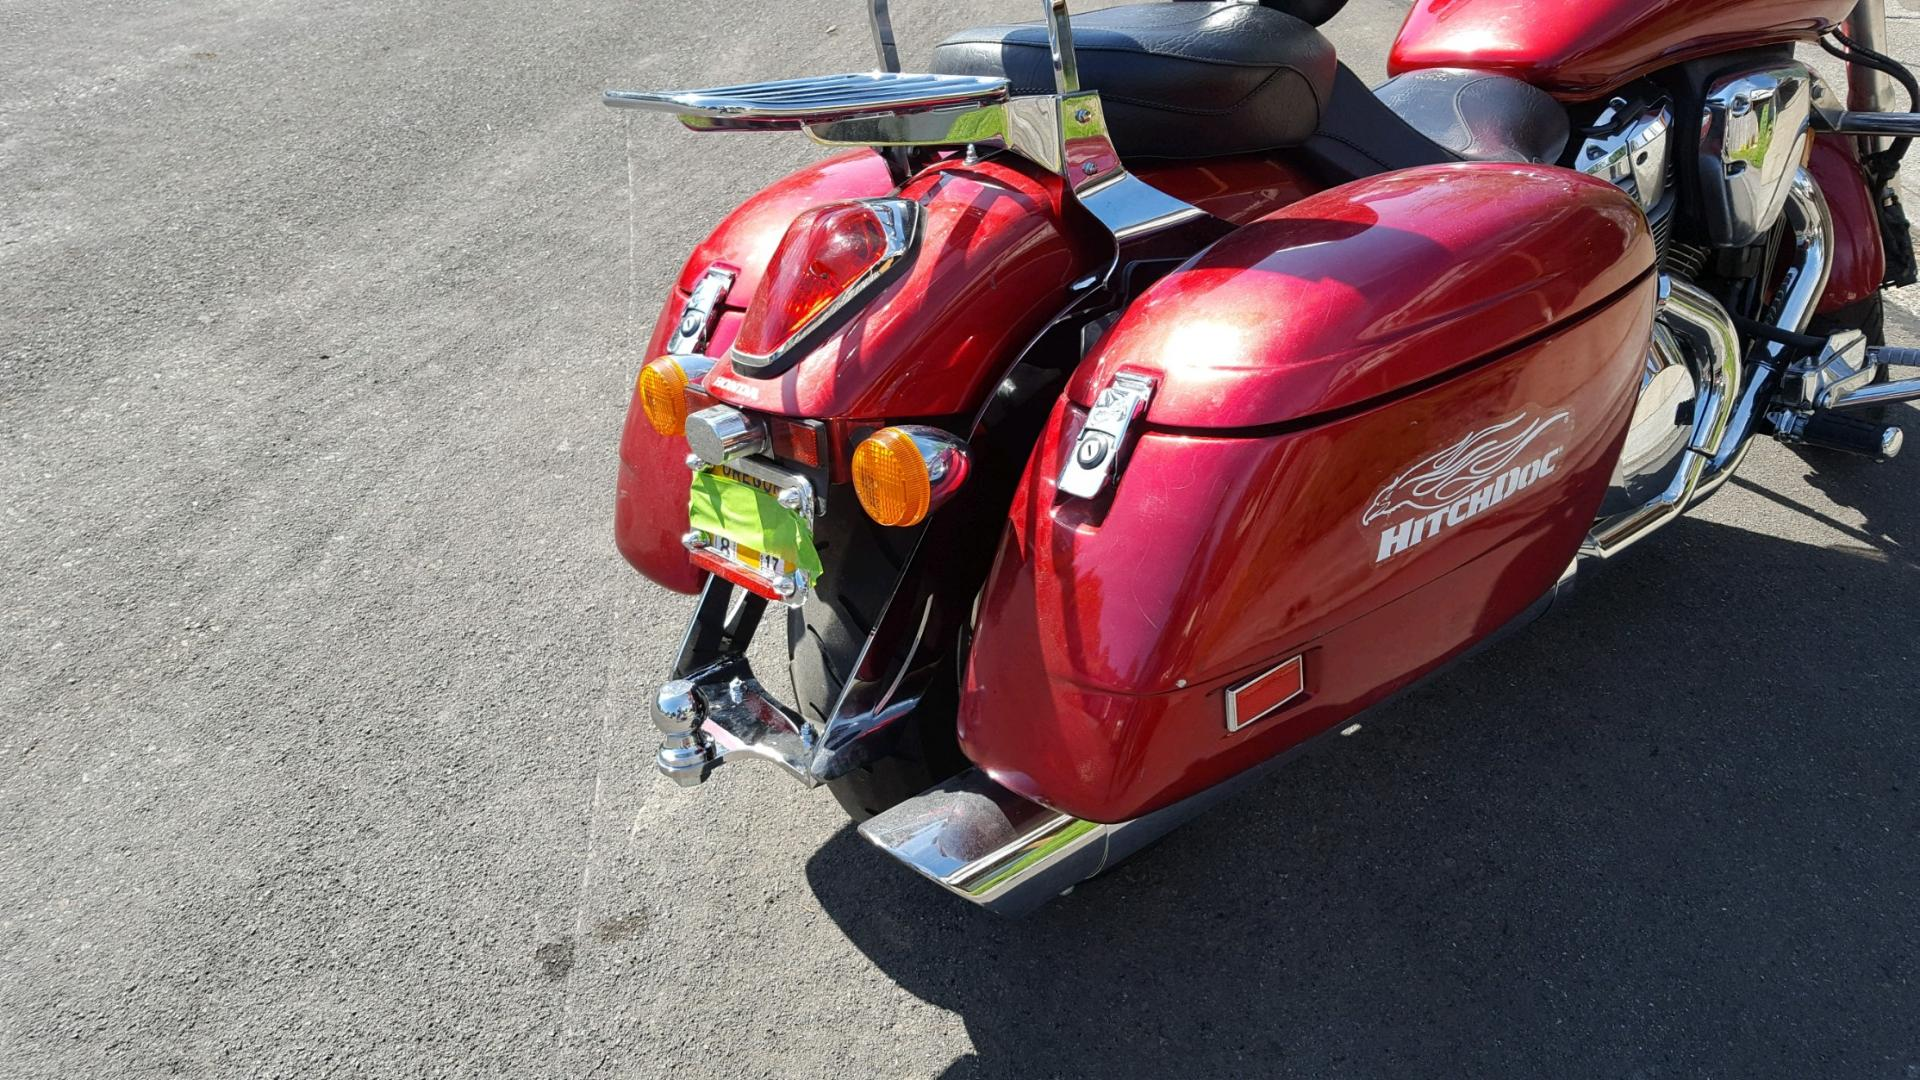 Motorcycle Hitches Hitchdoc Kuryakyn Trailer Wiring Harness Electrical Parts Street Canada Photo Gallery